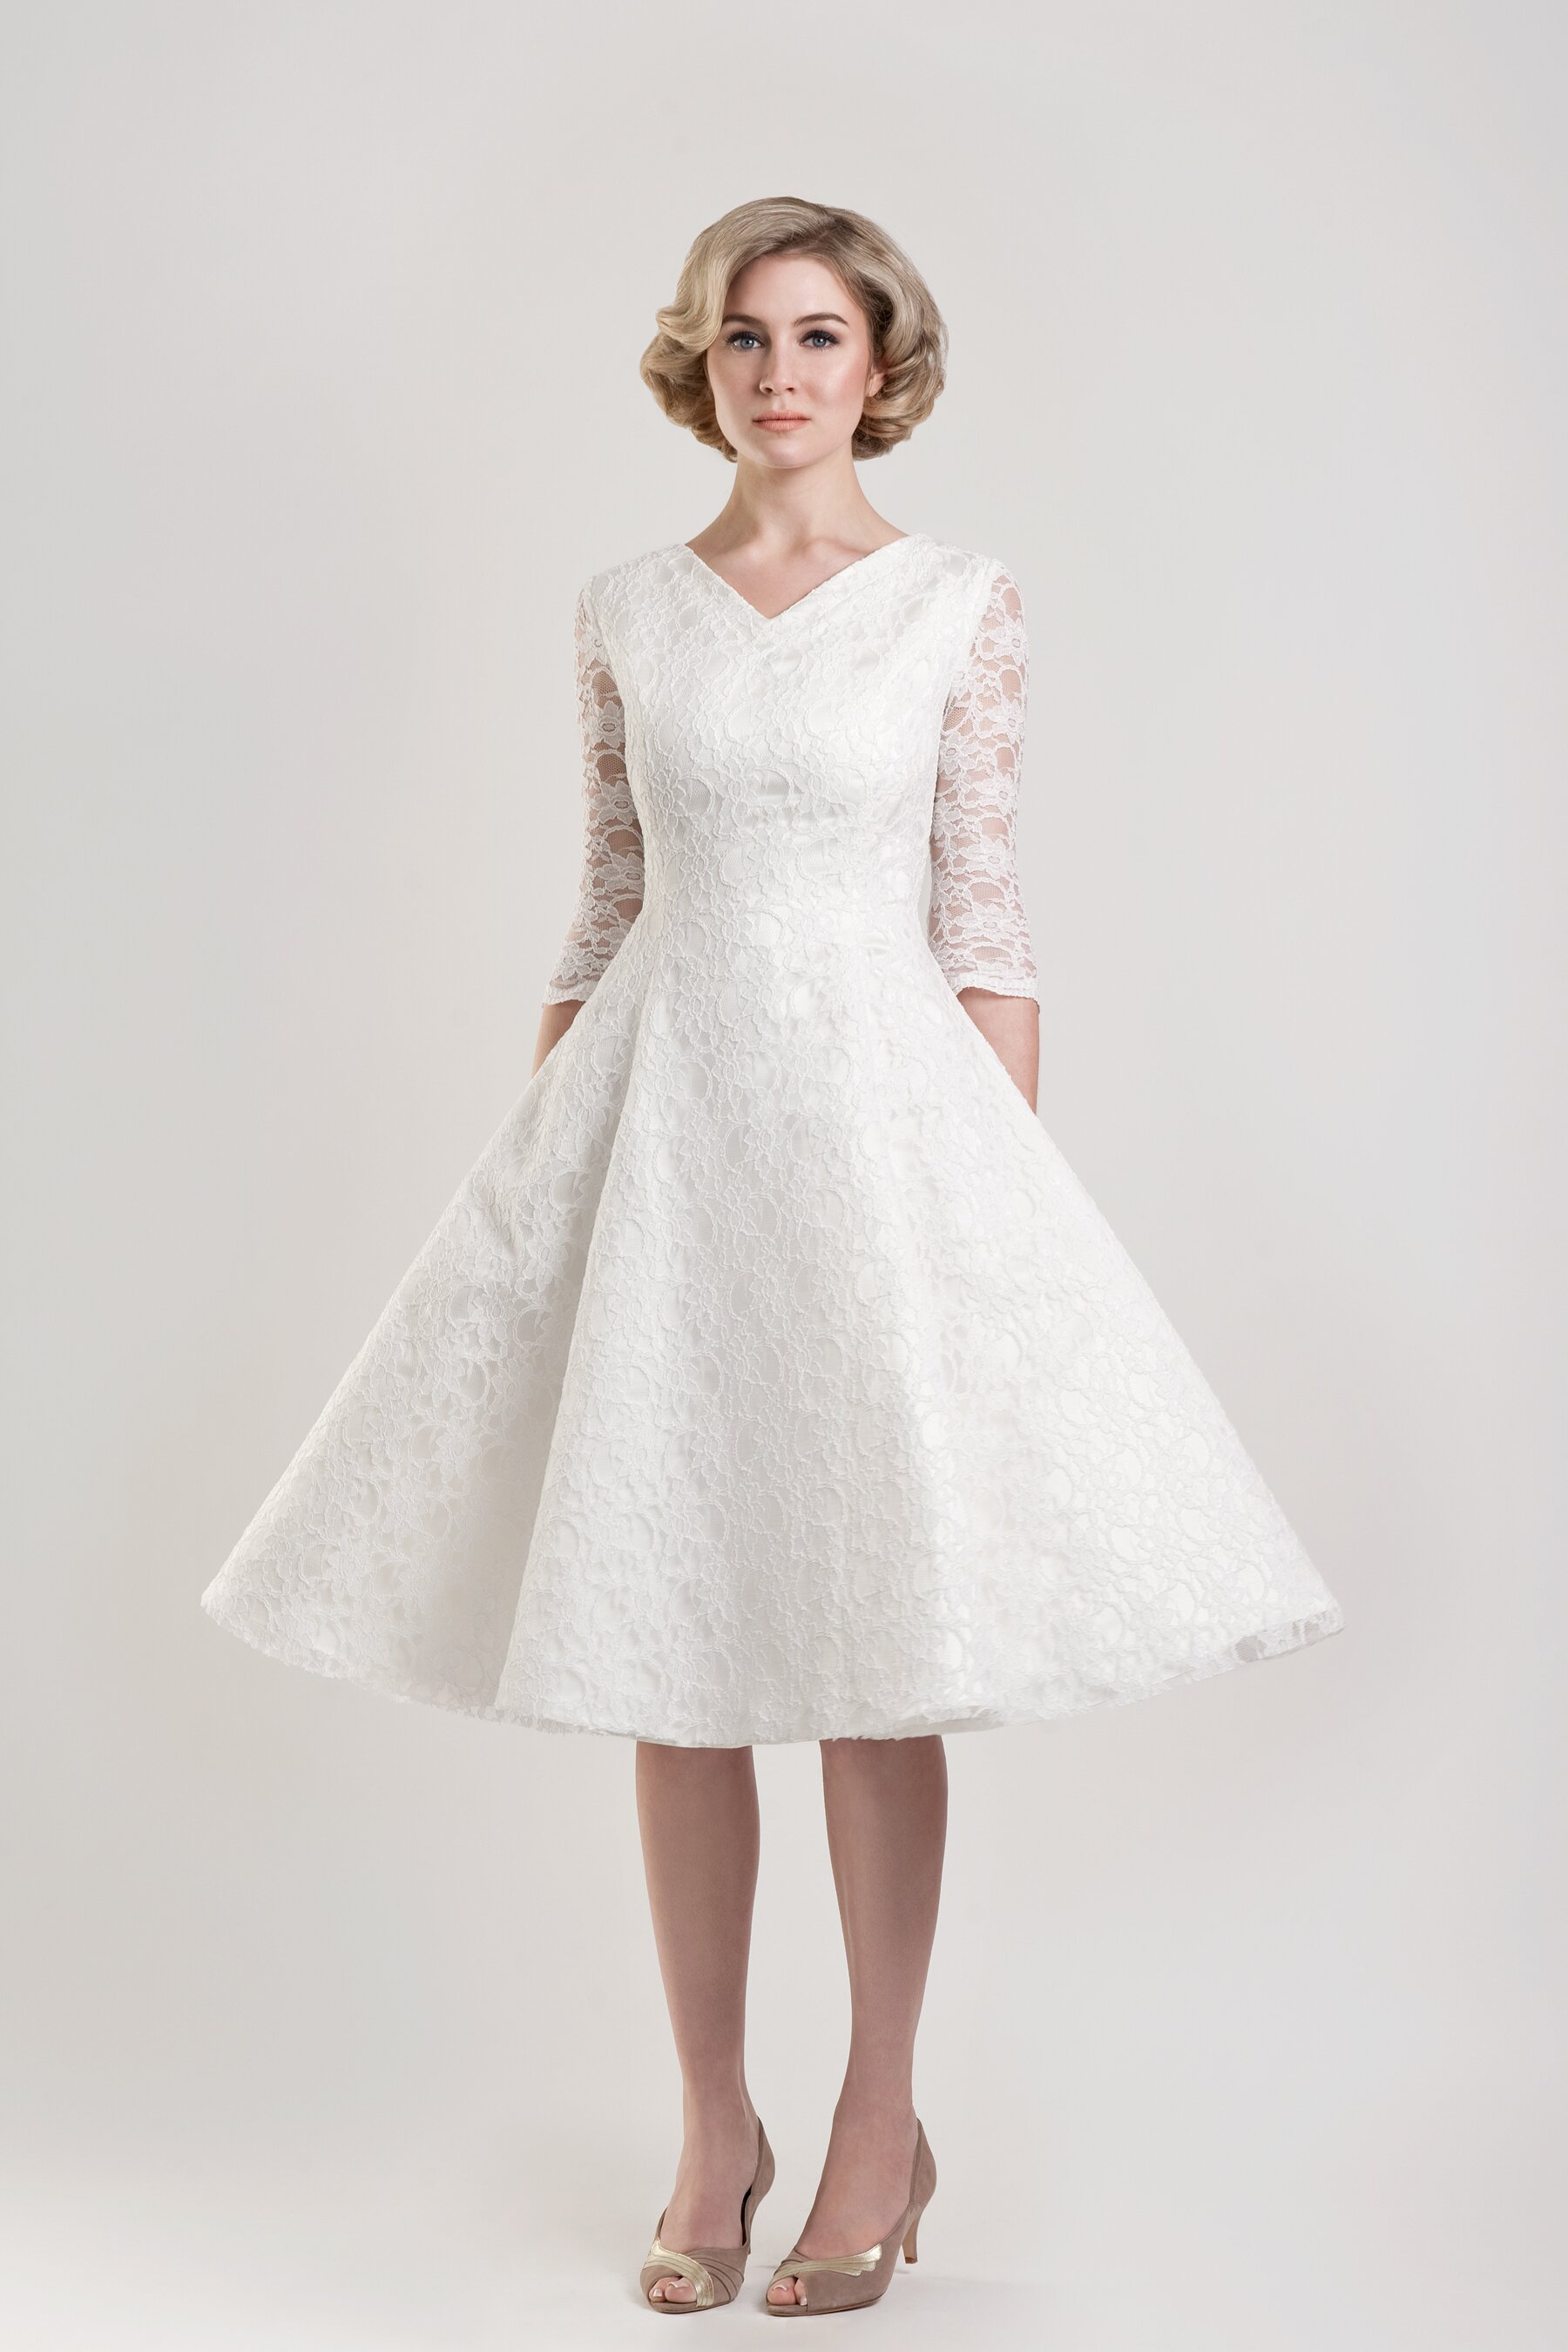 Vintage wedding party dresses photo - 6